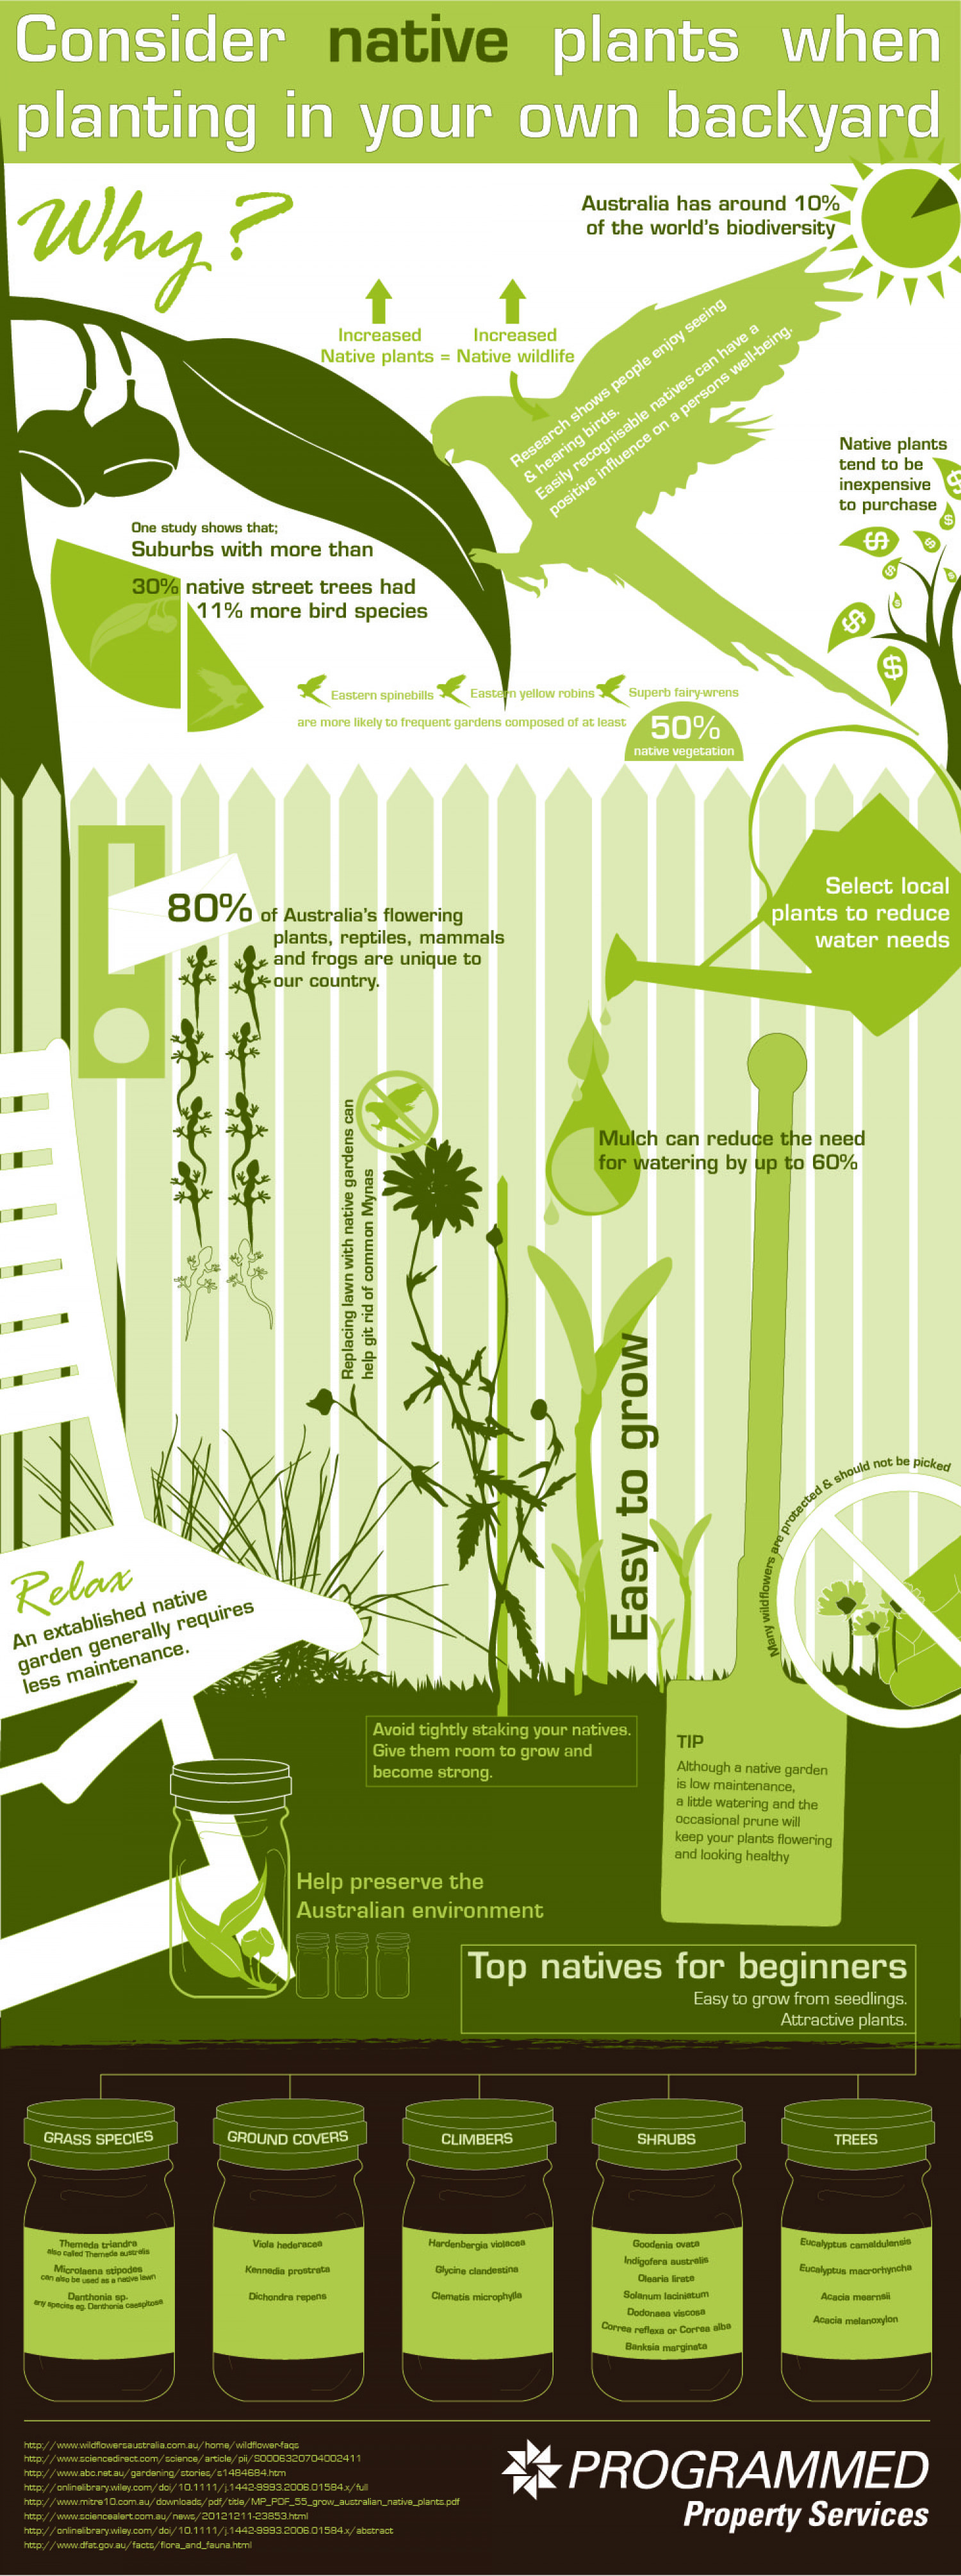 Benefits of Planting Australian Natives in Your Own Backyard Infographic